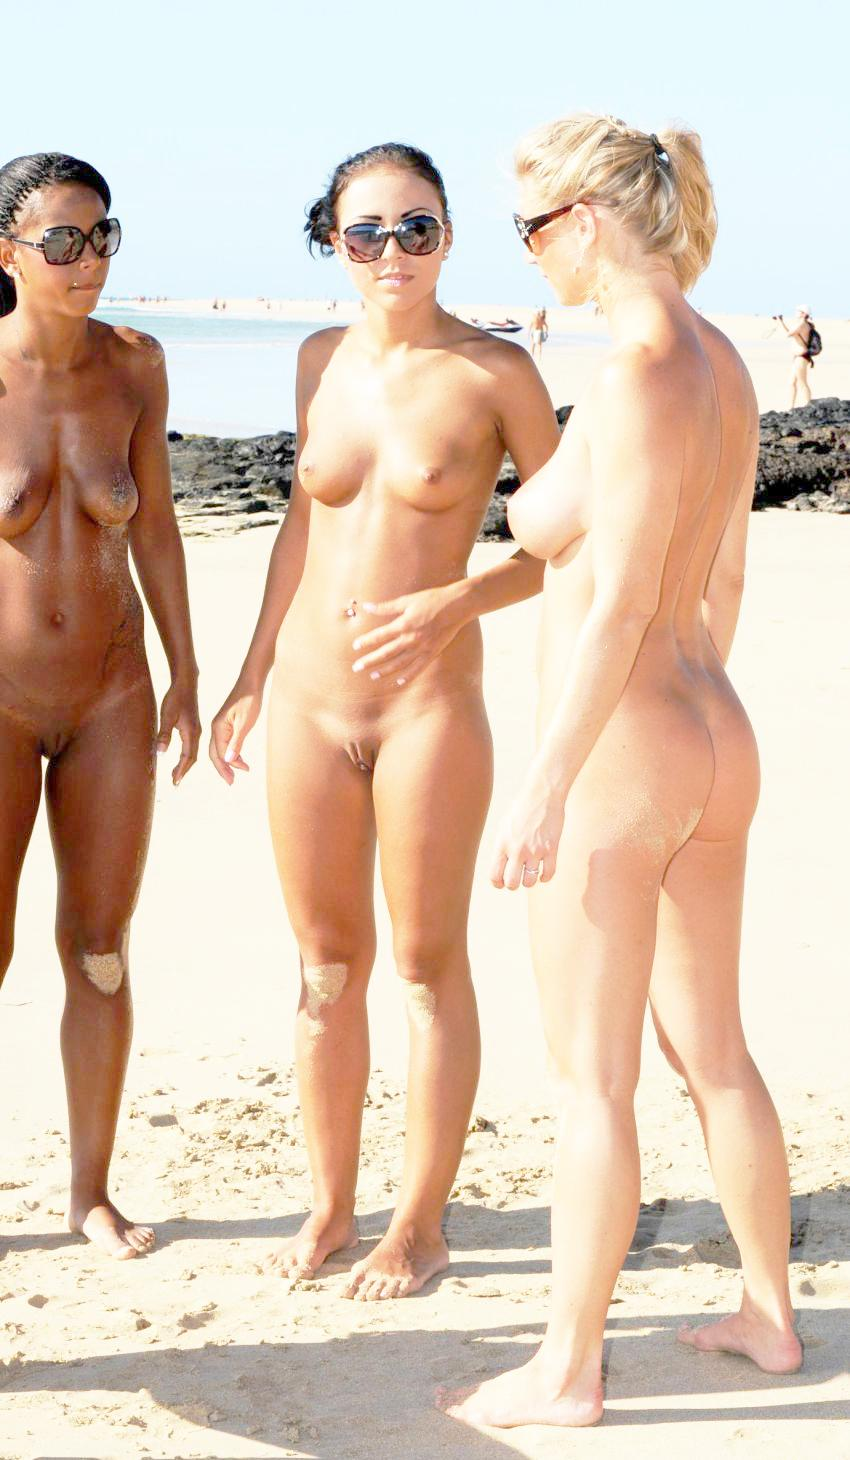 all ages naked pics